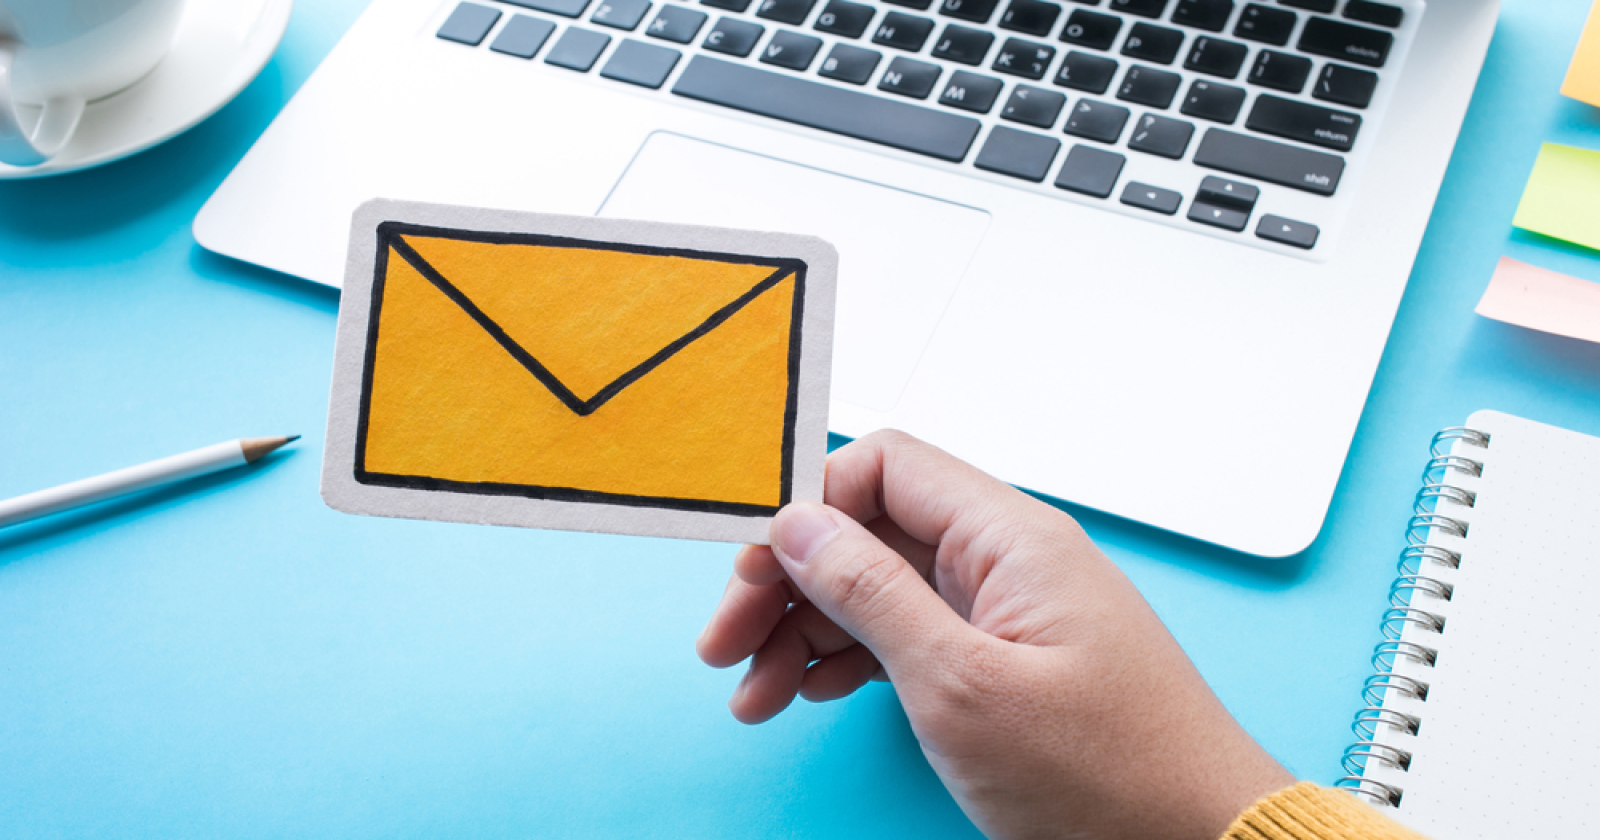 11 Powerful Email Marketing Tips You Need to Know